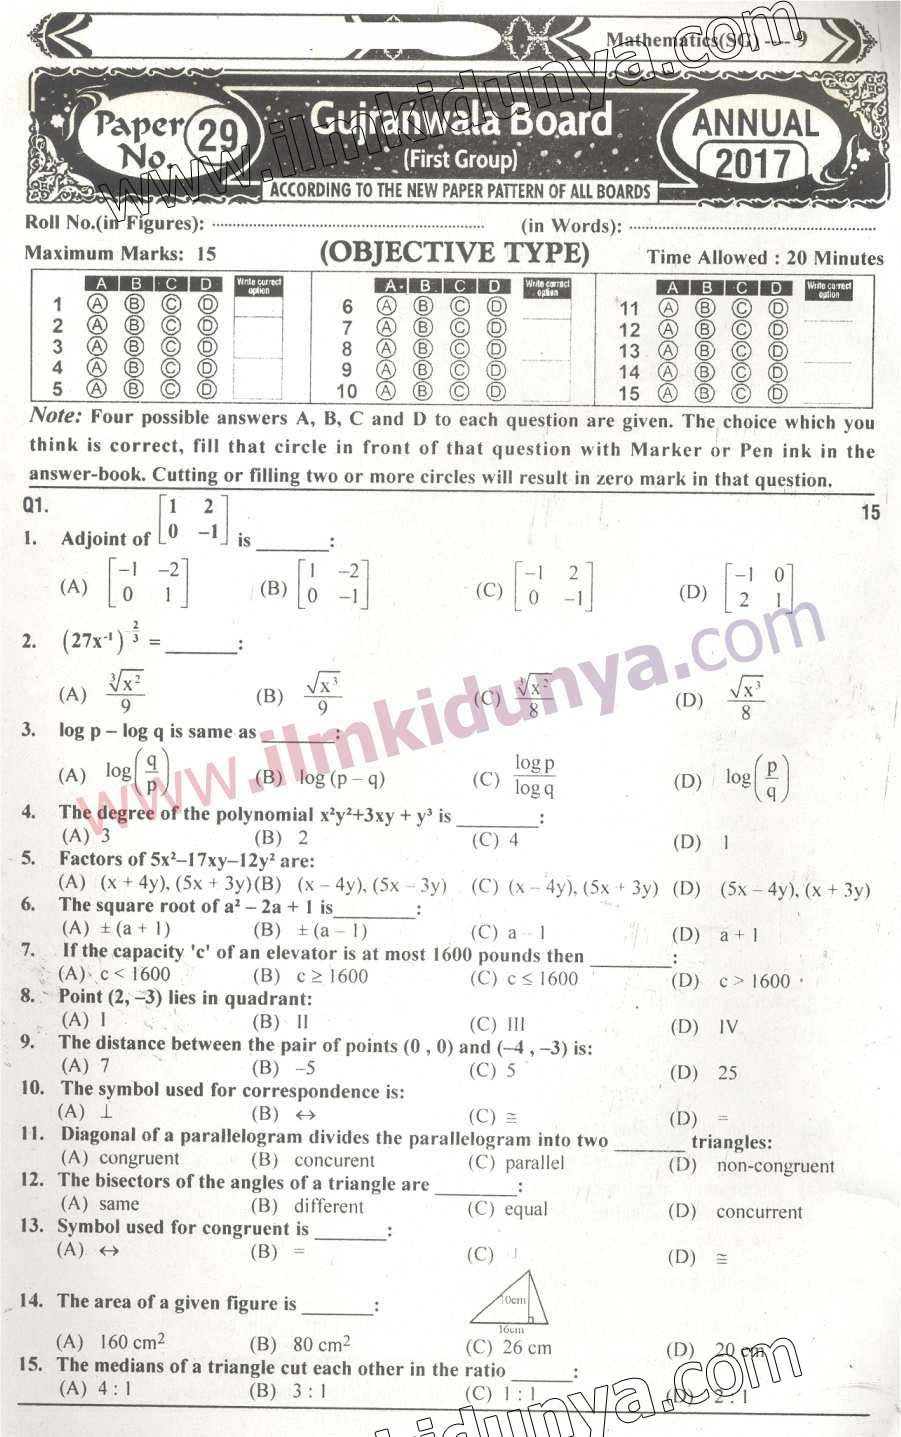 Past Papers 2016 Gujranwala Board 9th Class Mathematics Group 1